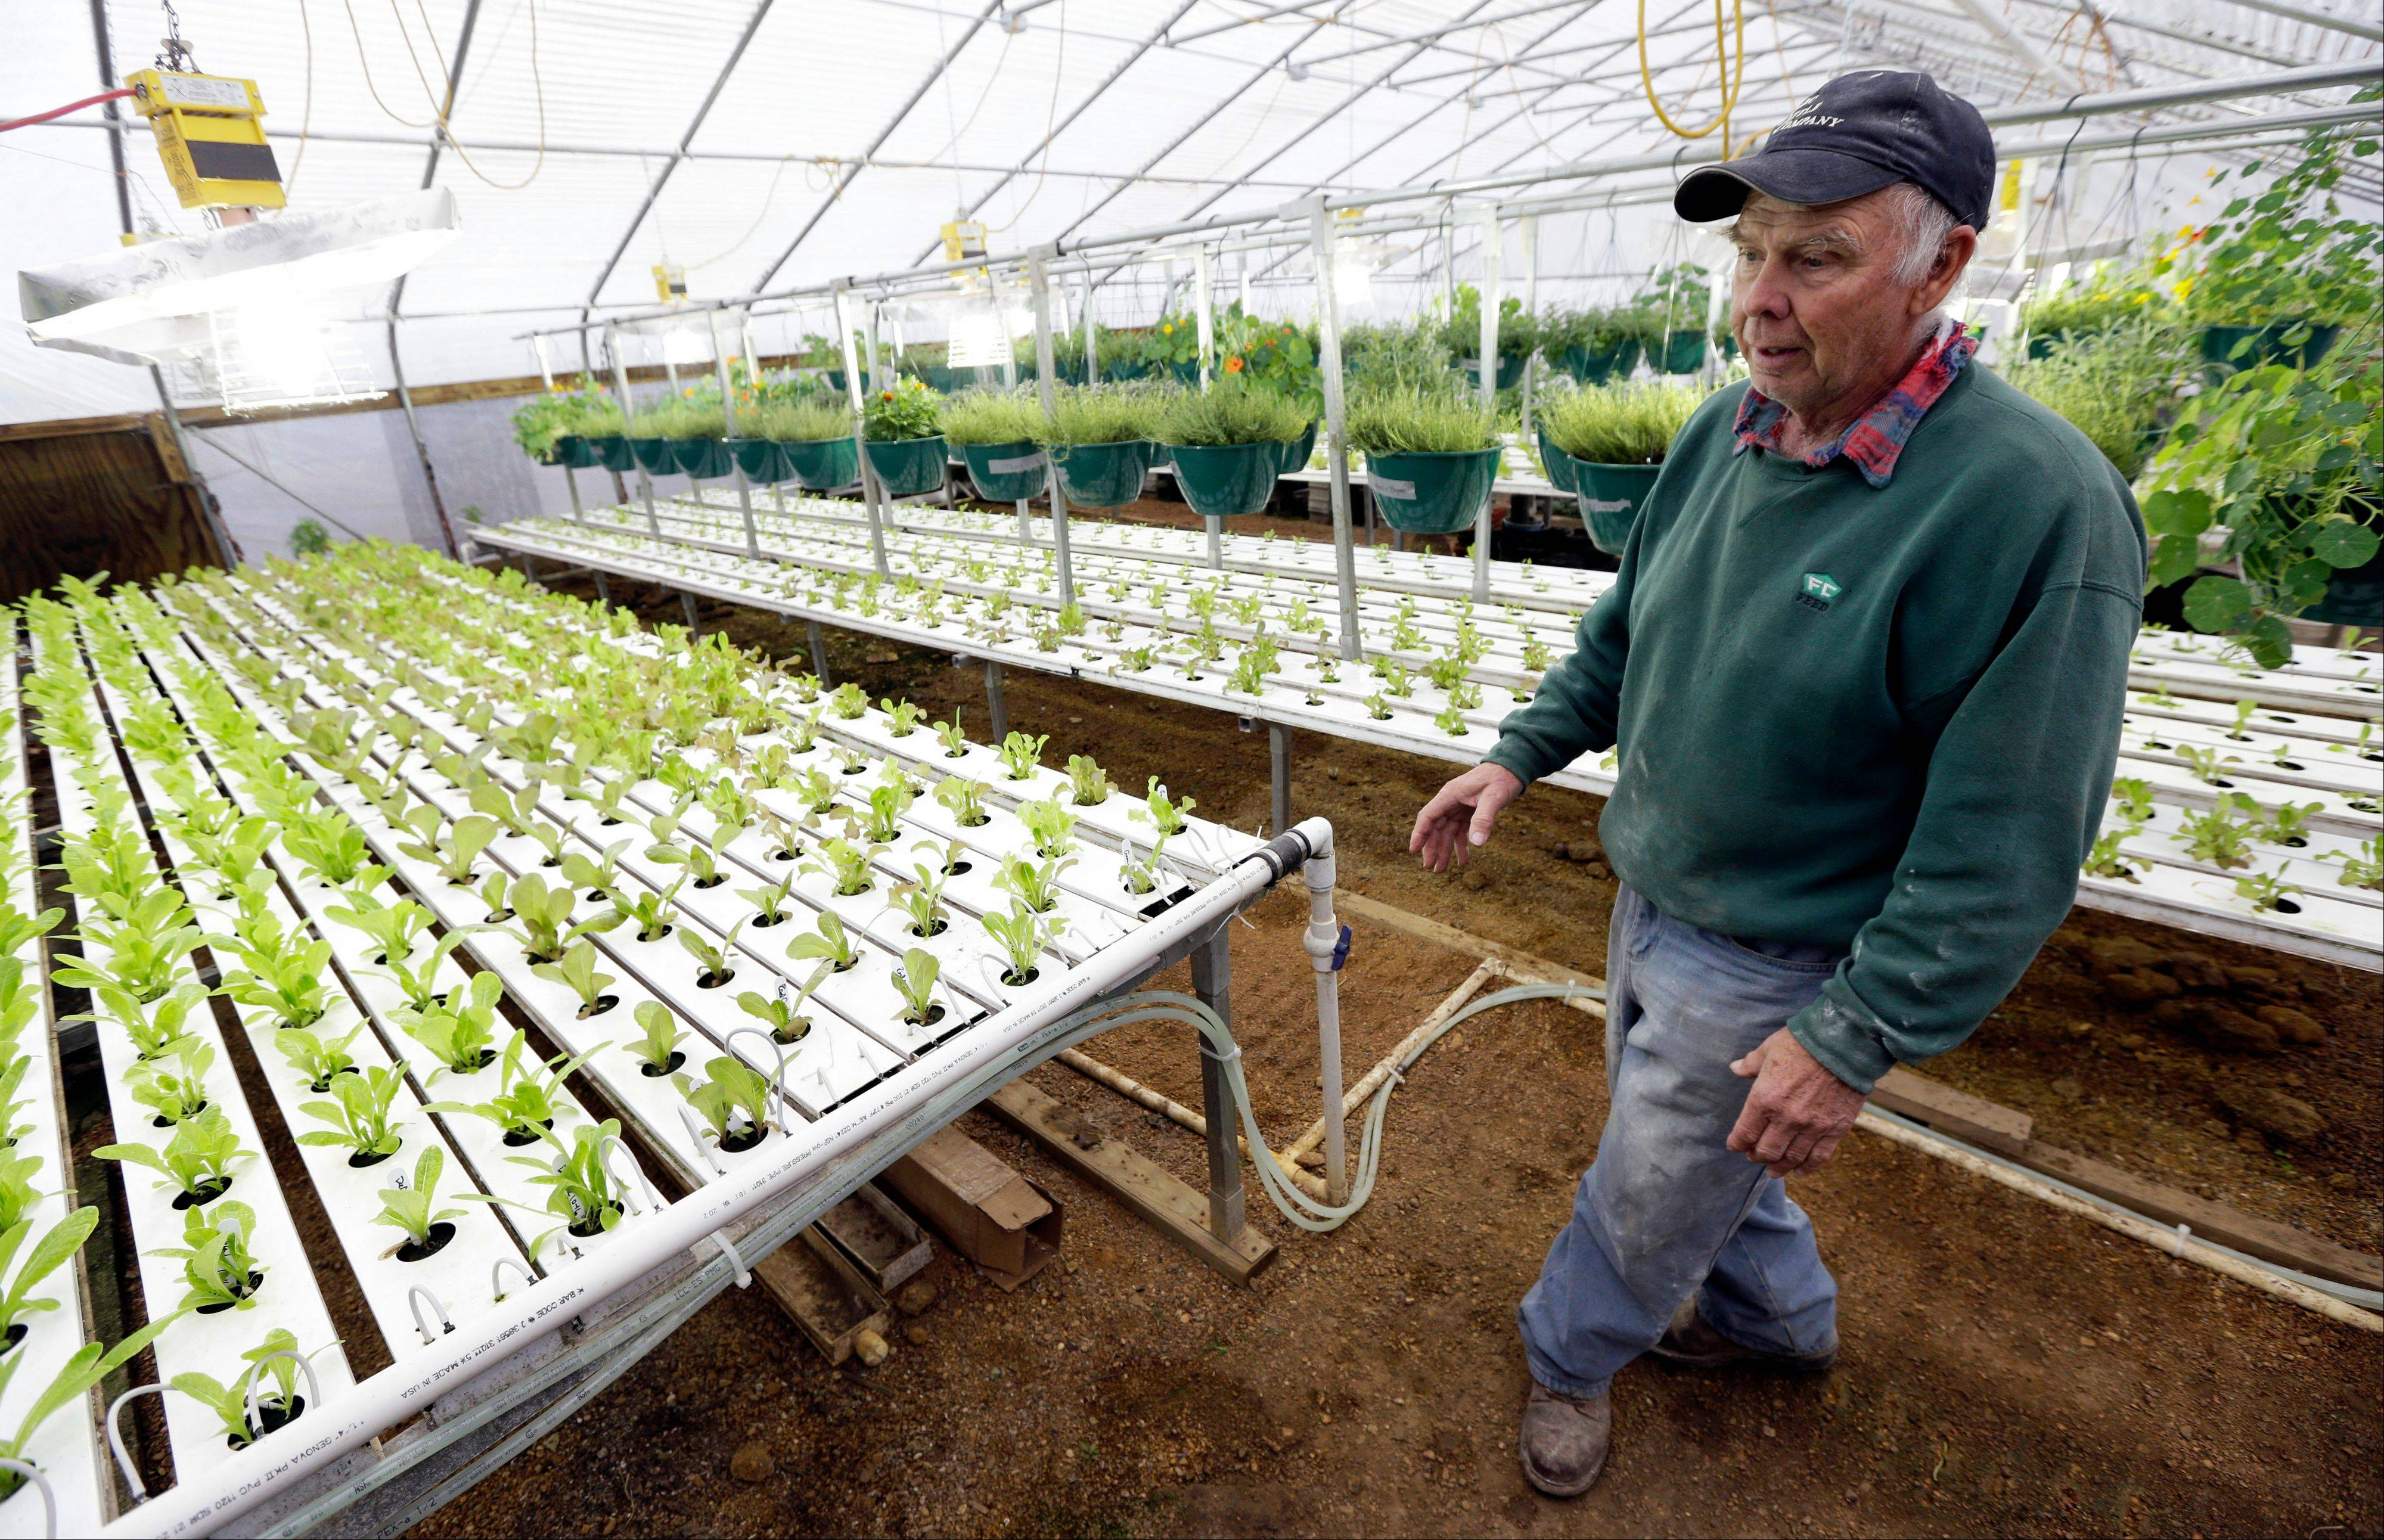 Earl Hafner talks last week about growing vegetables in his aquaponics greenhouse on his farm, near Panora, Iowa.